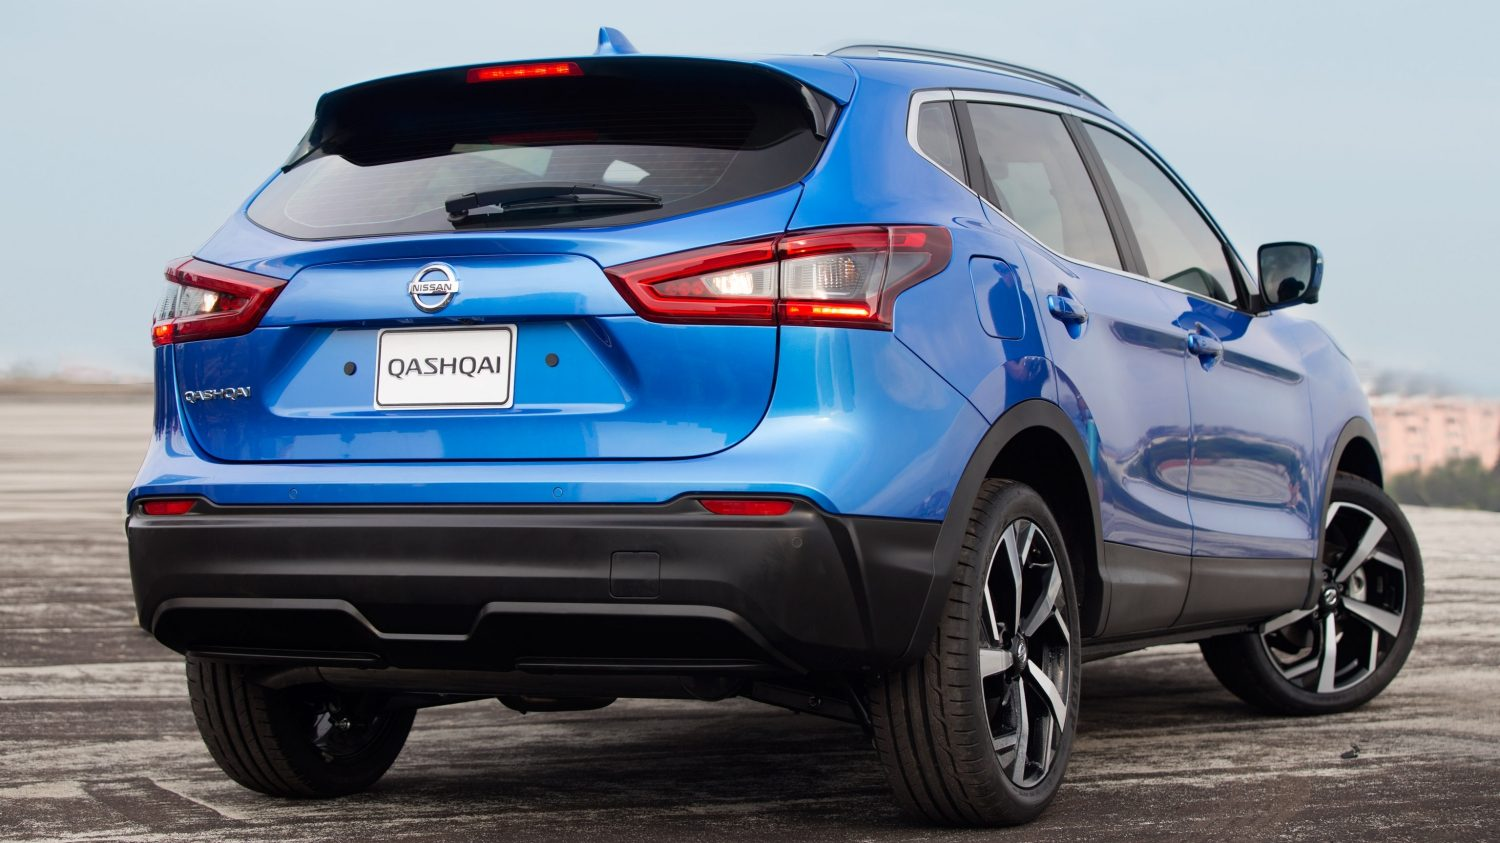 Qashqai rear driving shot on highway